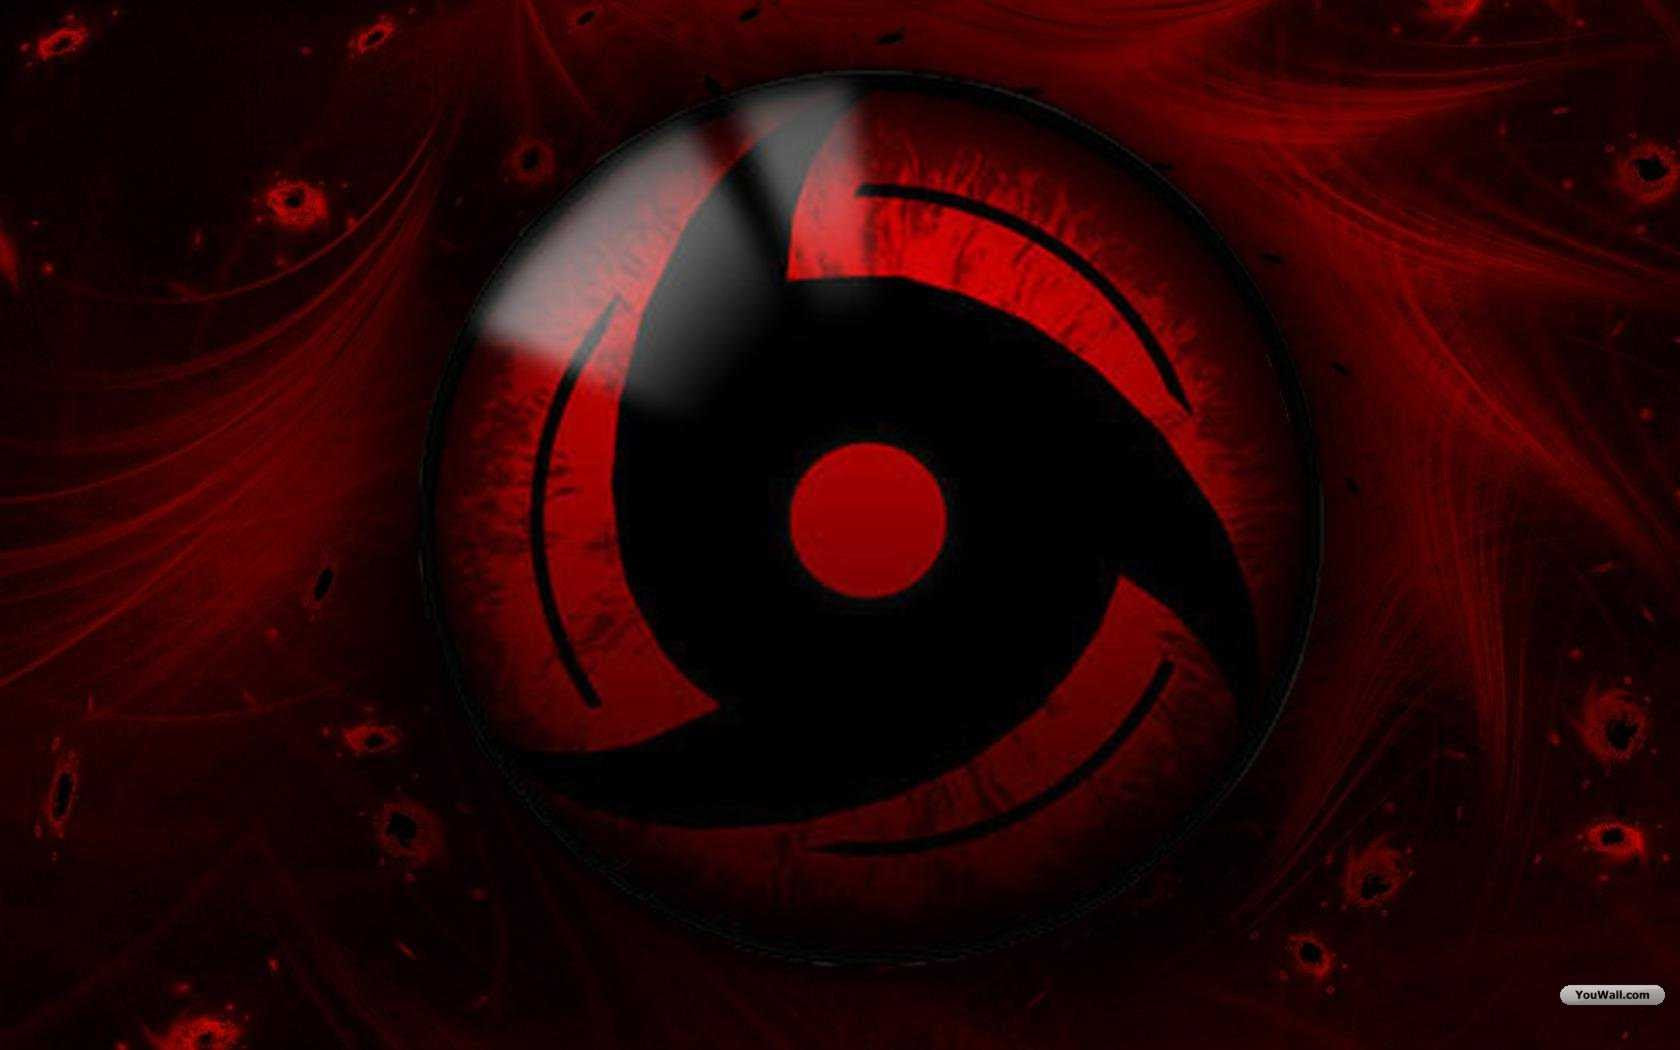 Black Red Naruto Sharingan 1680x1050 Wallpaper Anime Naruto Hd